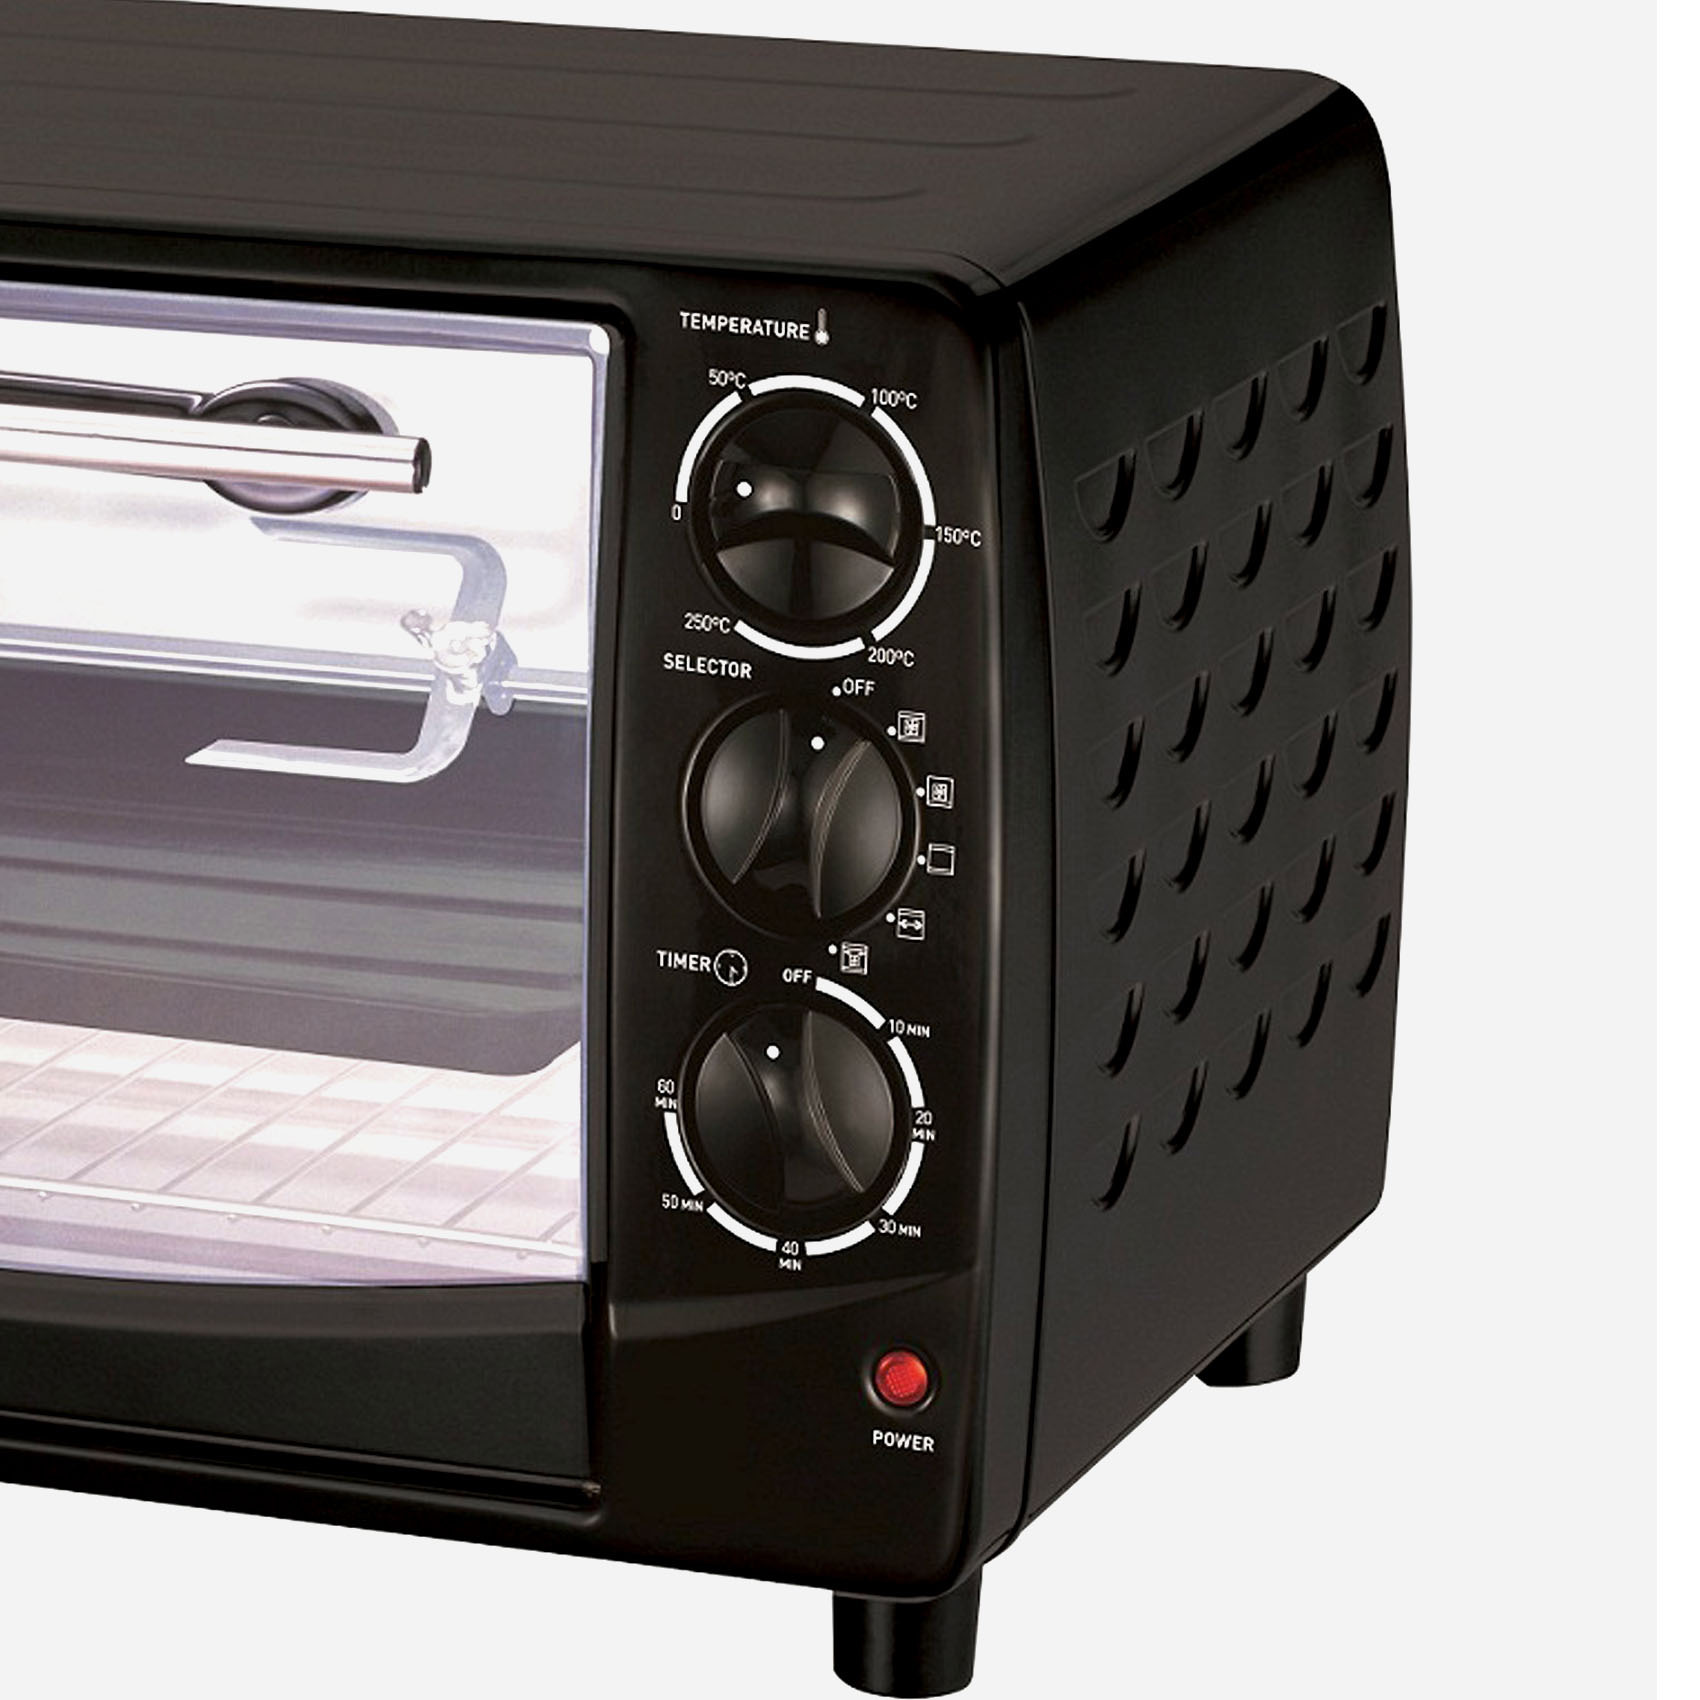 B&D OVEN TOASTER GRILLER TRO55-B5